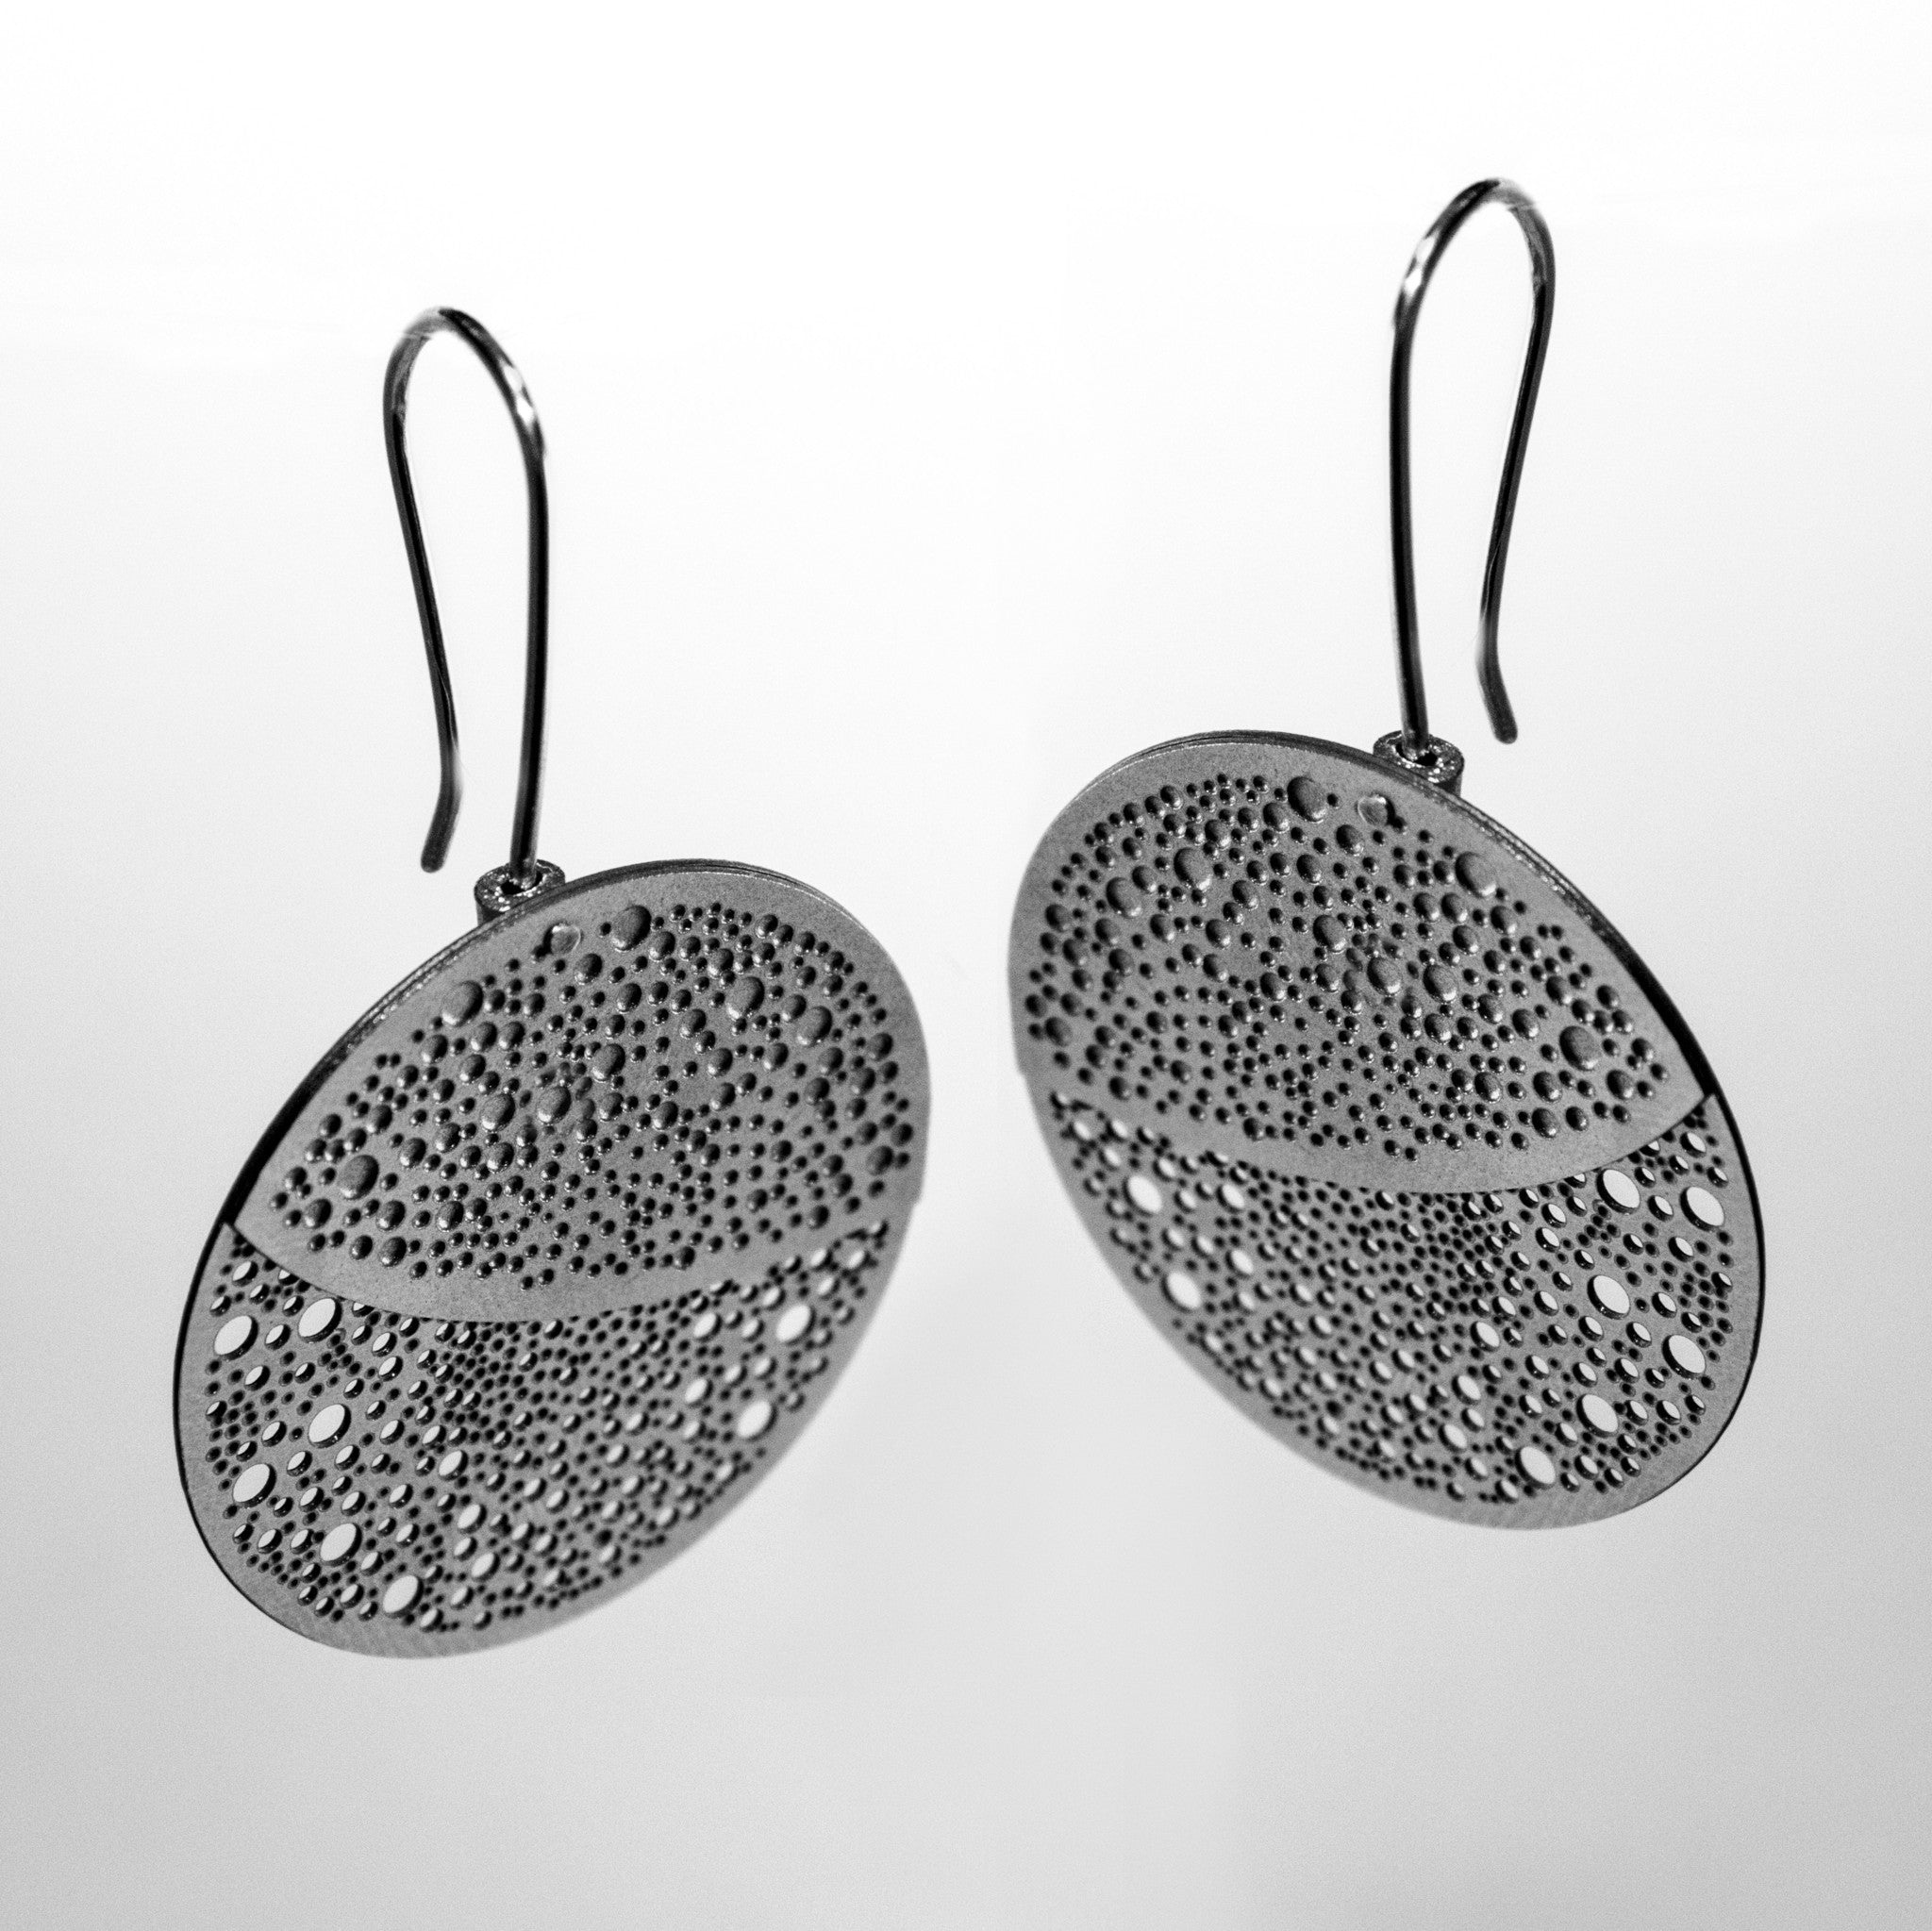 SILVER OBERON EARRINGS